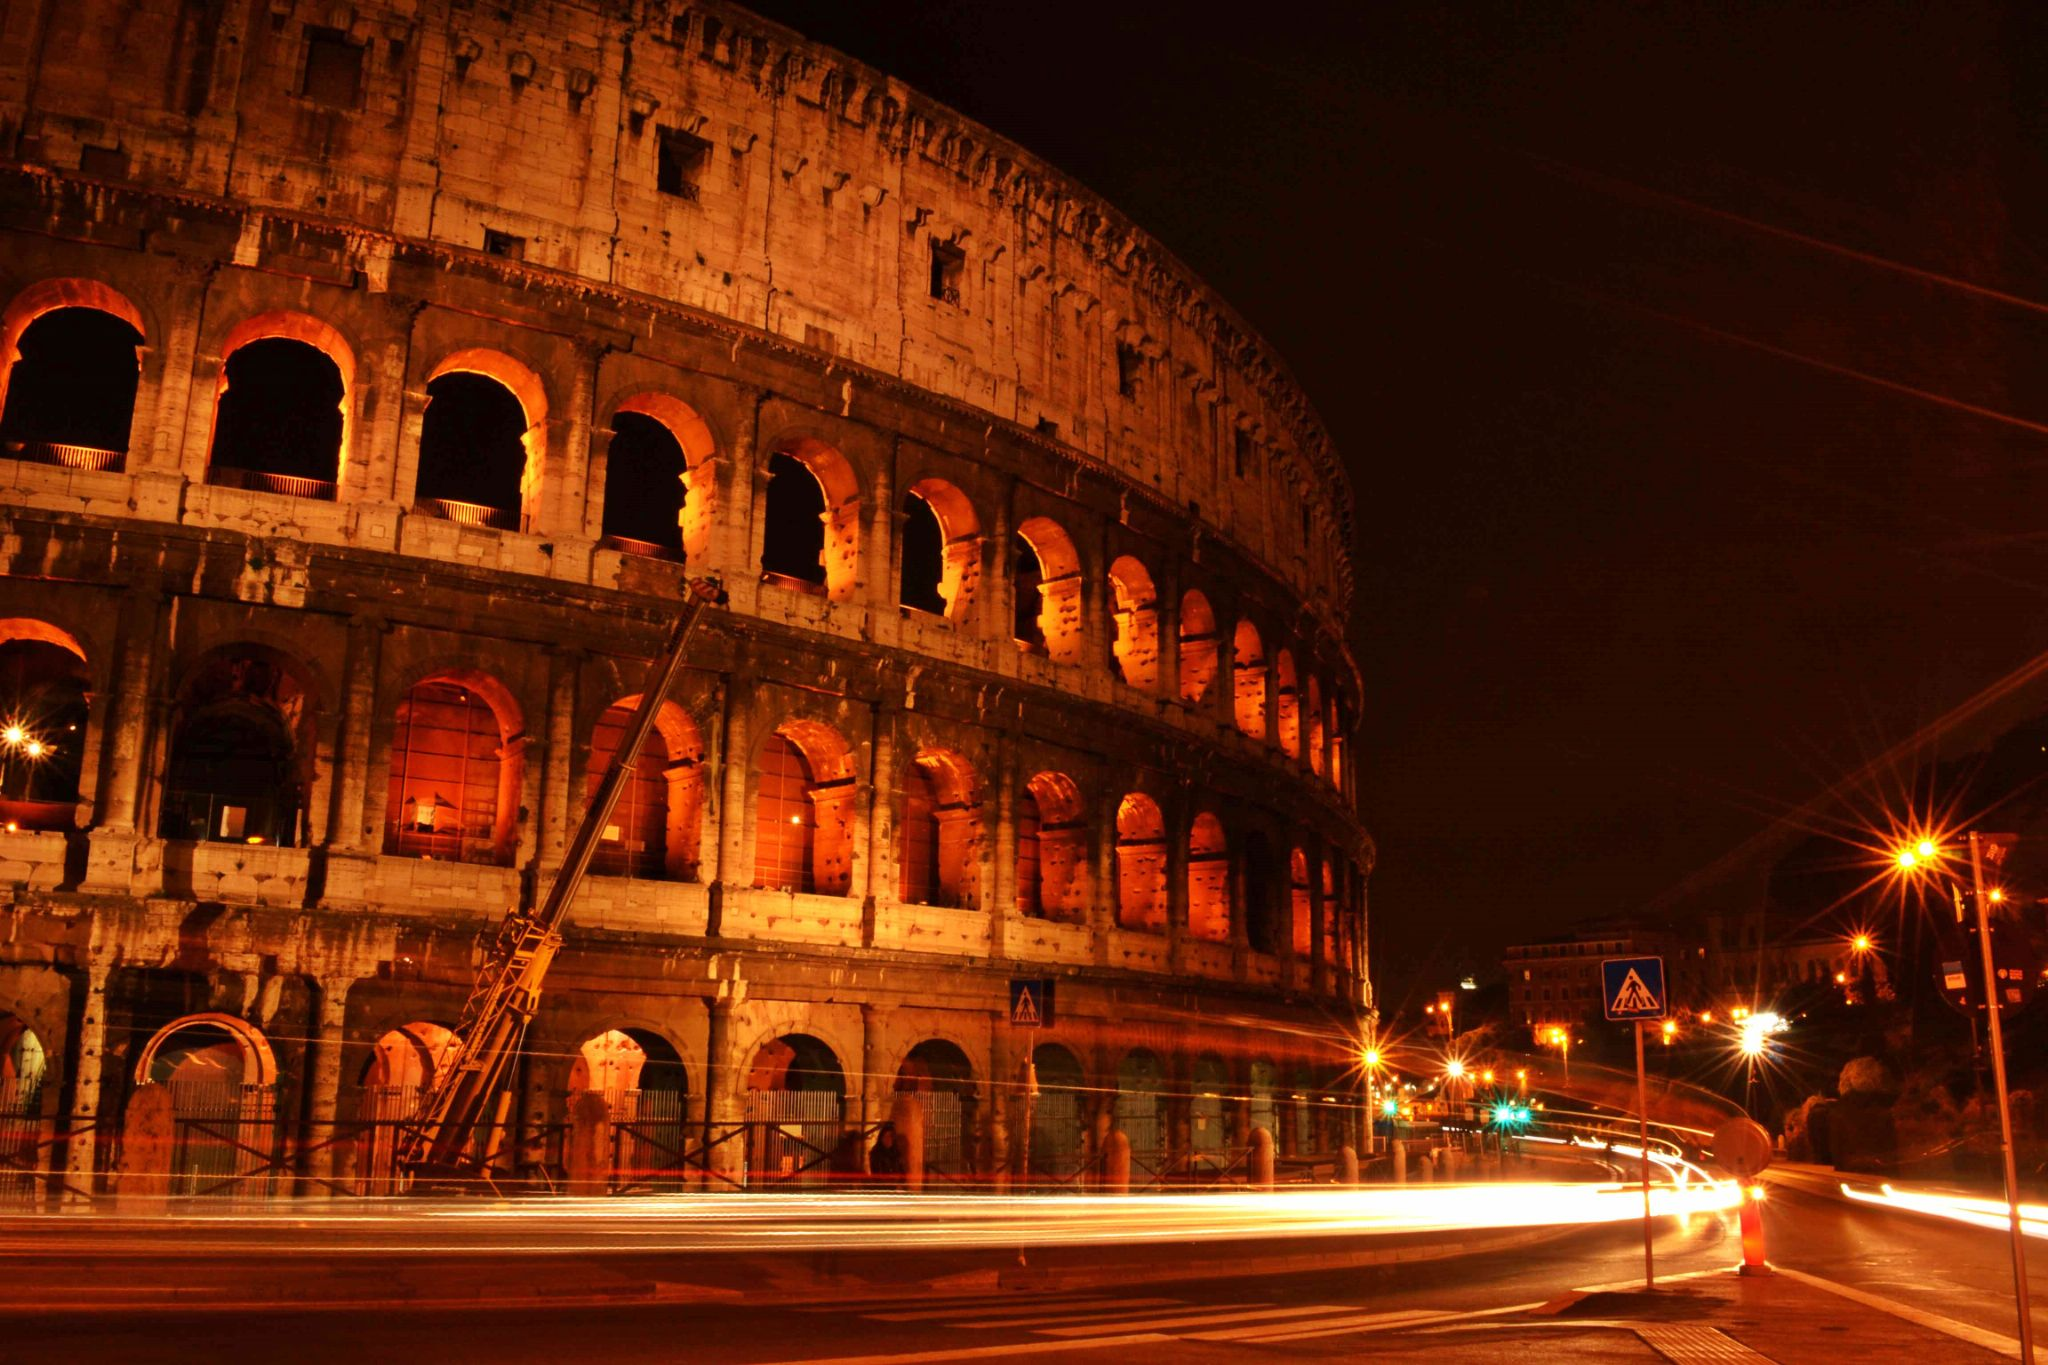 When in Rome by Ankit Arora